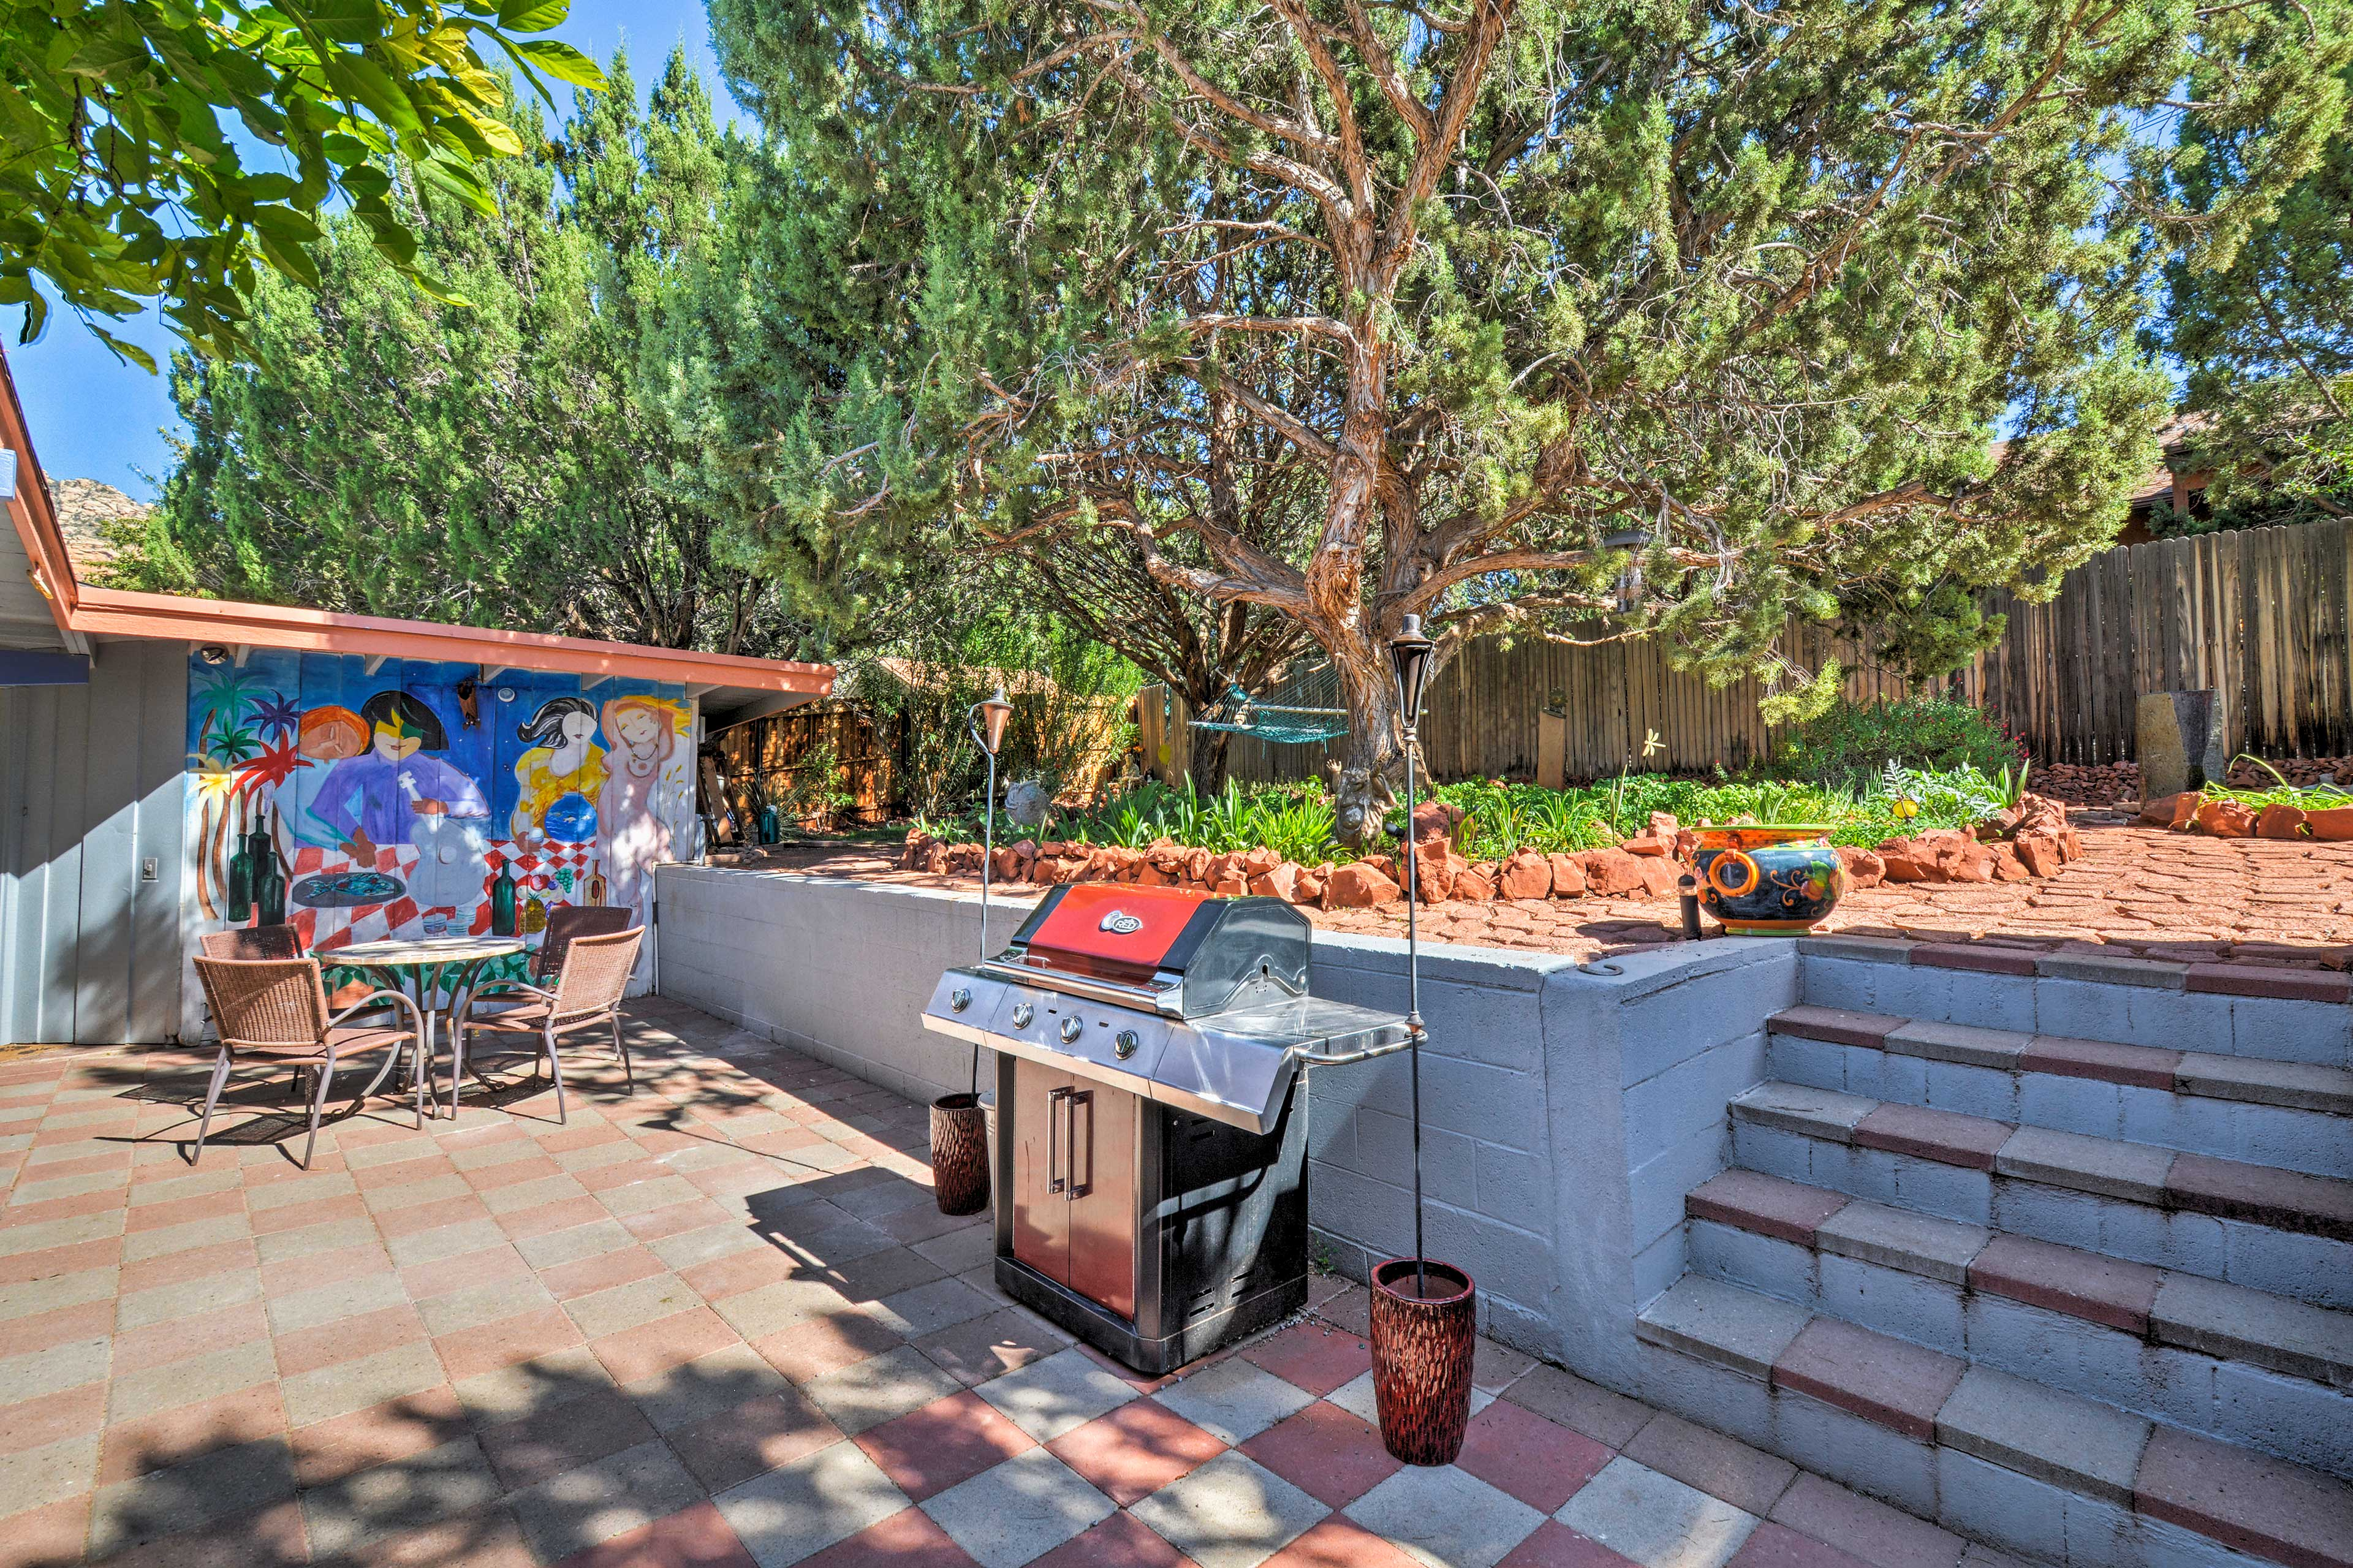 Private Patio | 2 Tiers | Gas Grill | Outdoor Dining Table